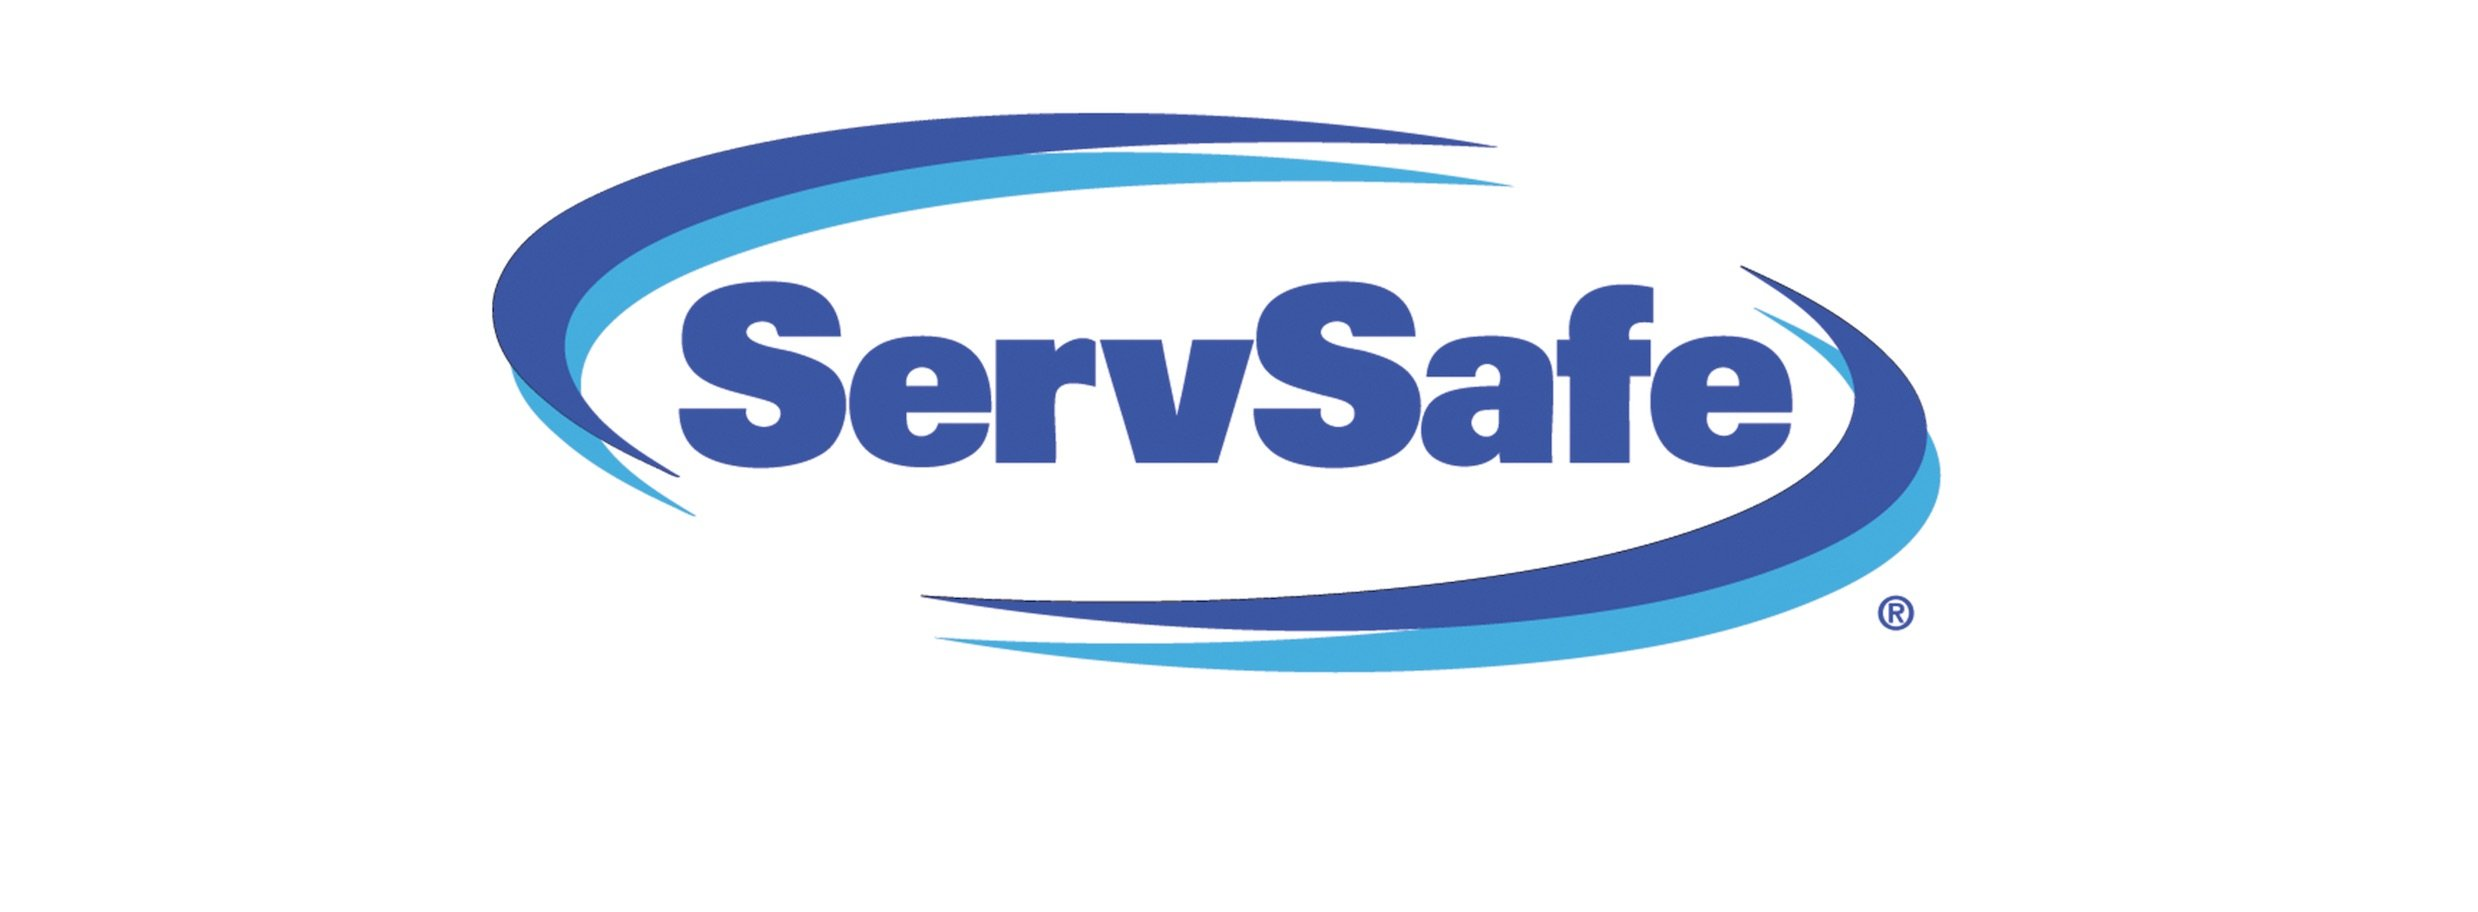 ServSafe Certification Program Logo